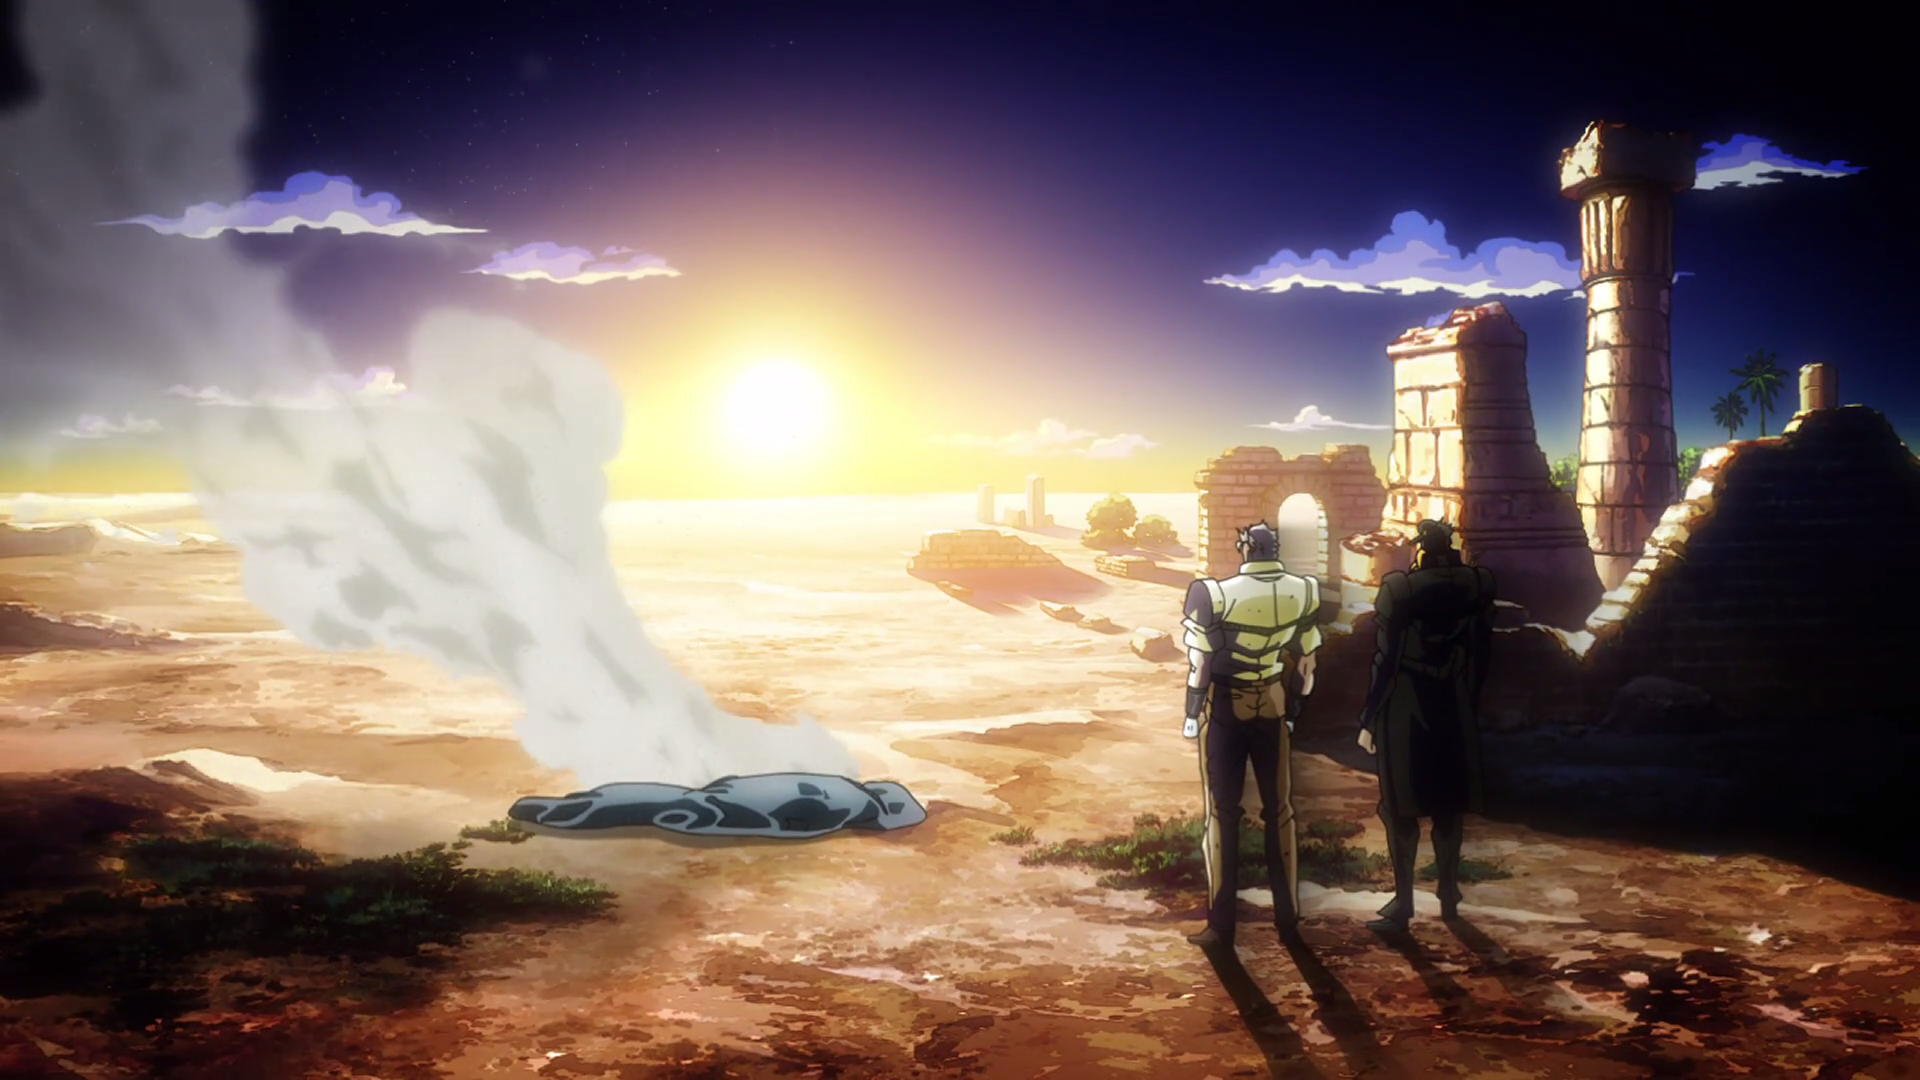 DIO's ashes Anime